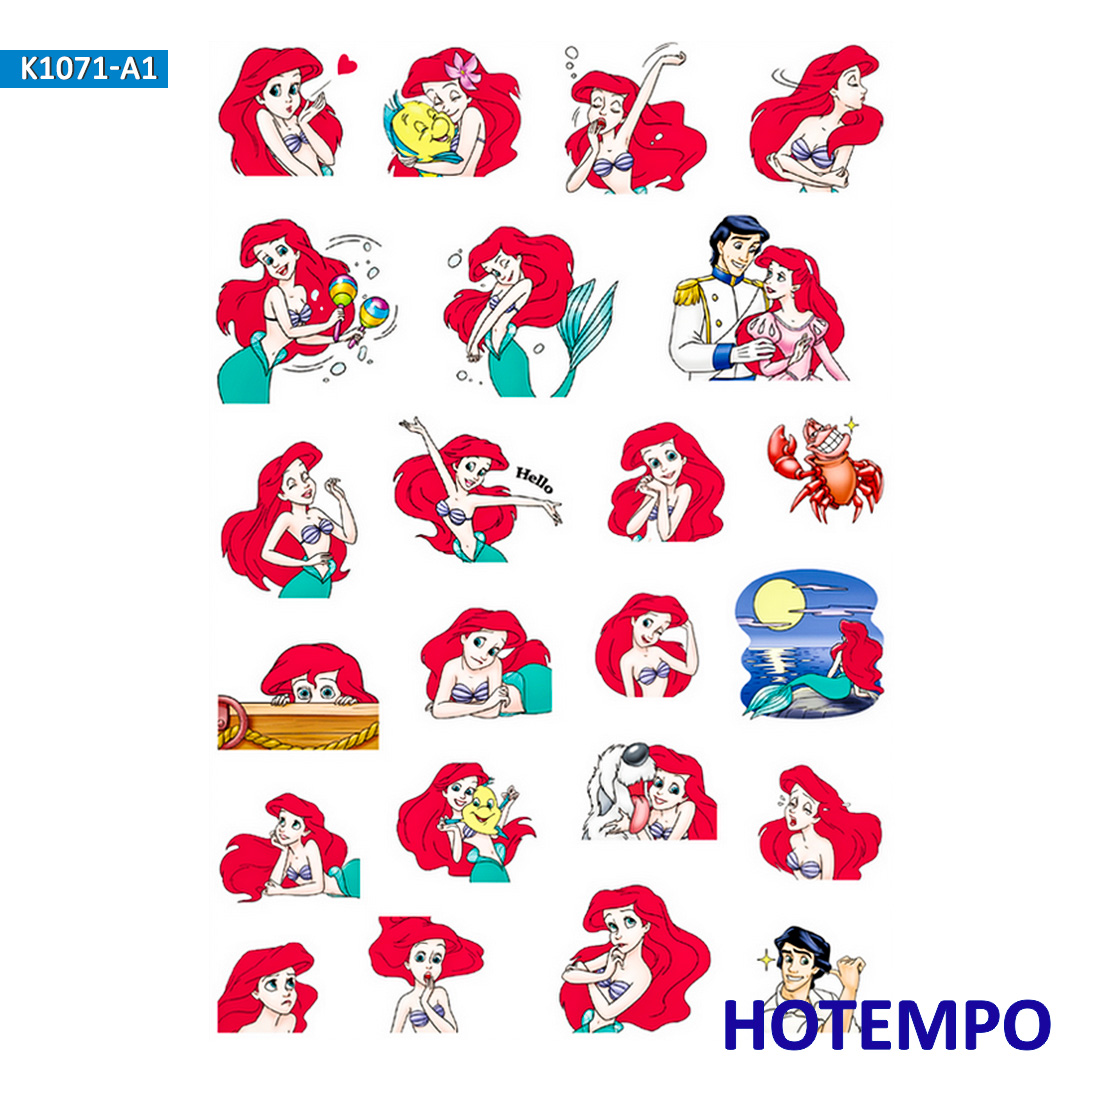 Mermaid Ariel Princess Cartoon Stickers Girl Children Kids Gift DIY Letter Diary Scrapbooking Stationery Pegatinas  Stickers